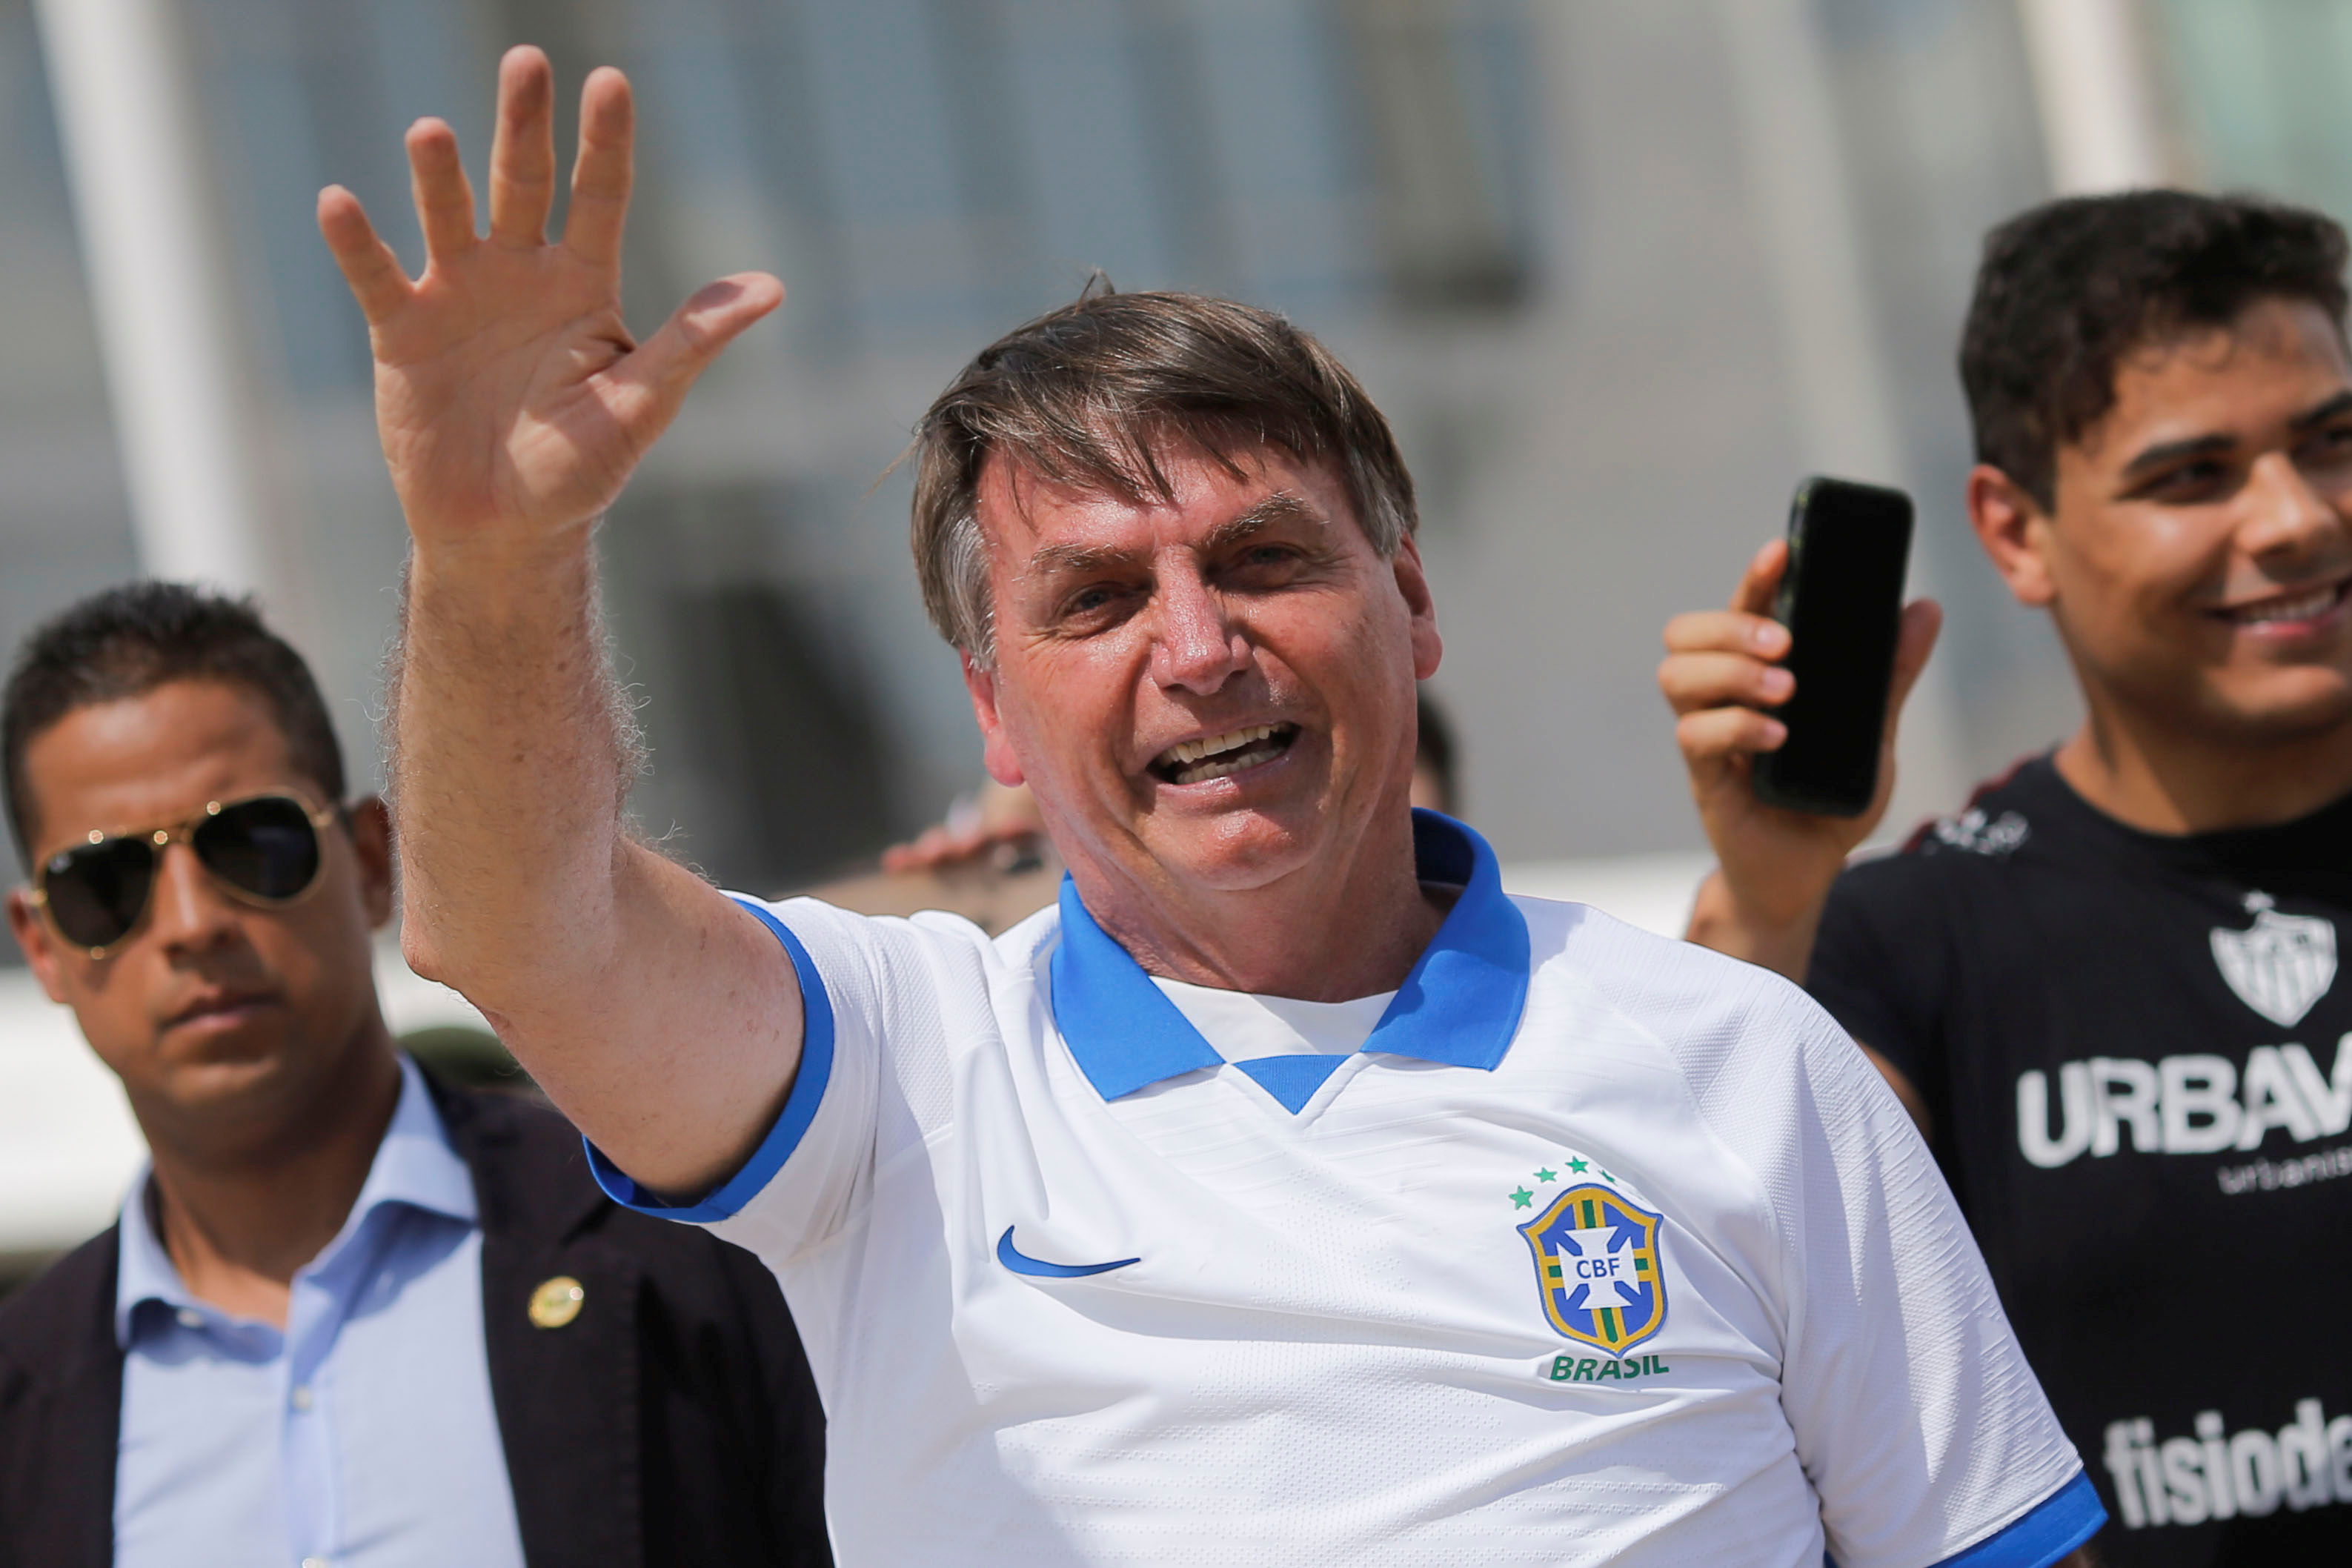 Brazilian president Jair Bolsonaro, who has been criticized for not taking the coronavirus seriously, waves at a crowd while wearing a soccer shirt.